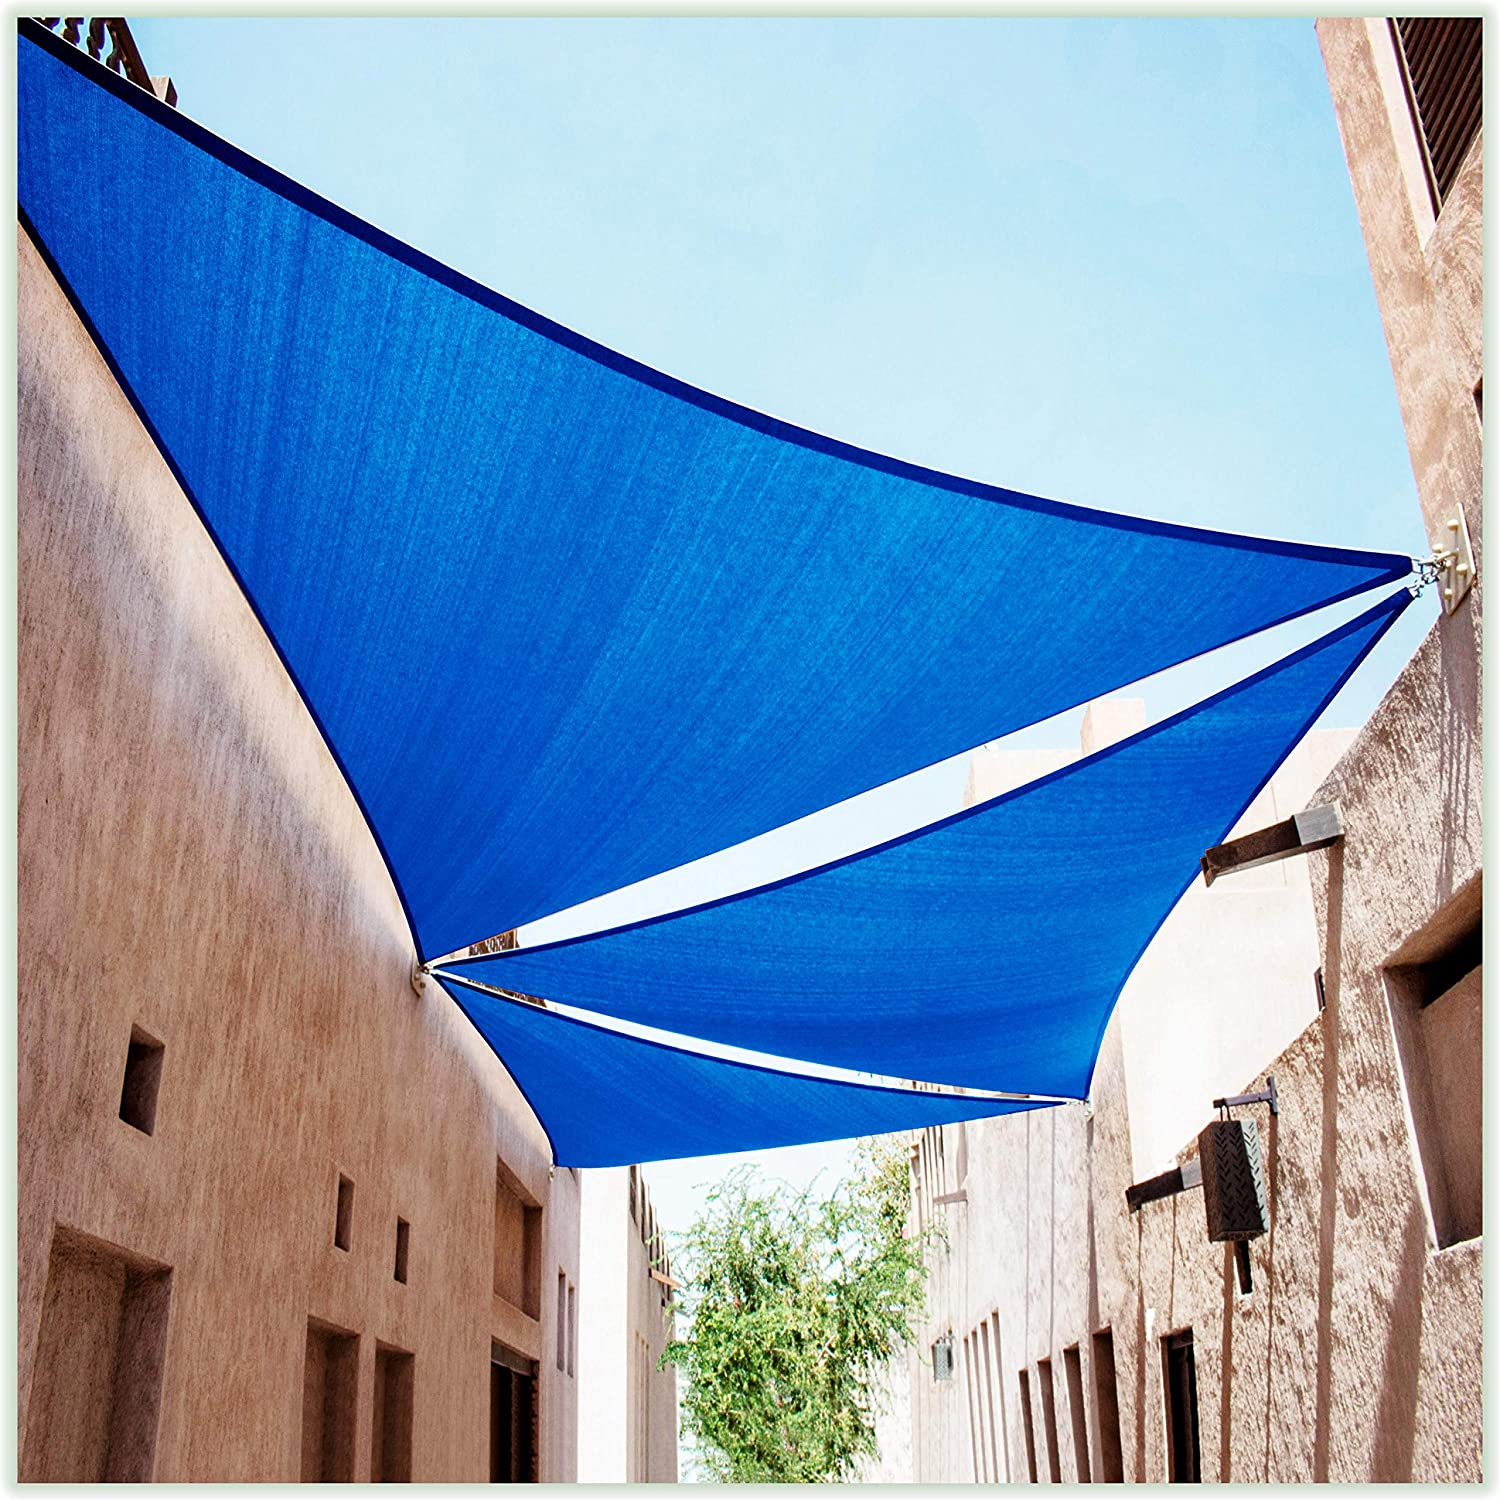 ColourTree 16' x 22.6' Blue Sail OFFicial store Sun CTAPTR Shade 5% OFF Triangle